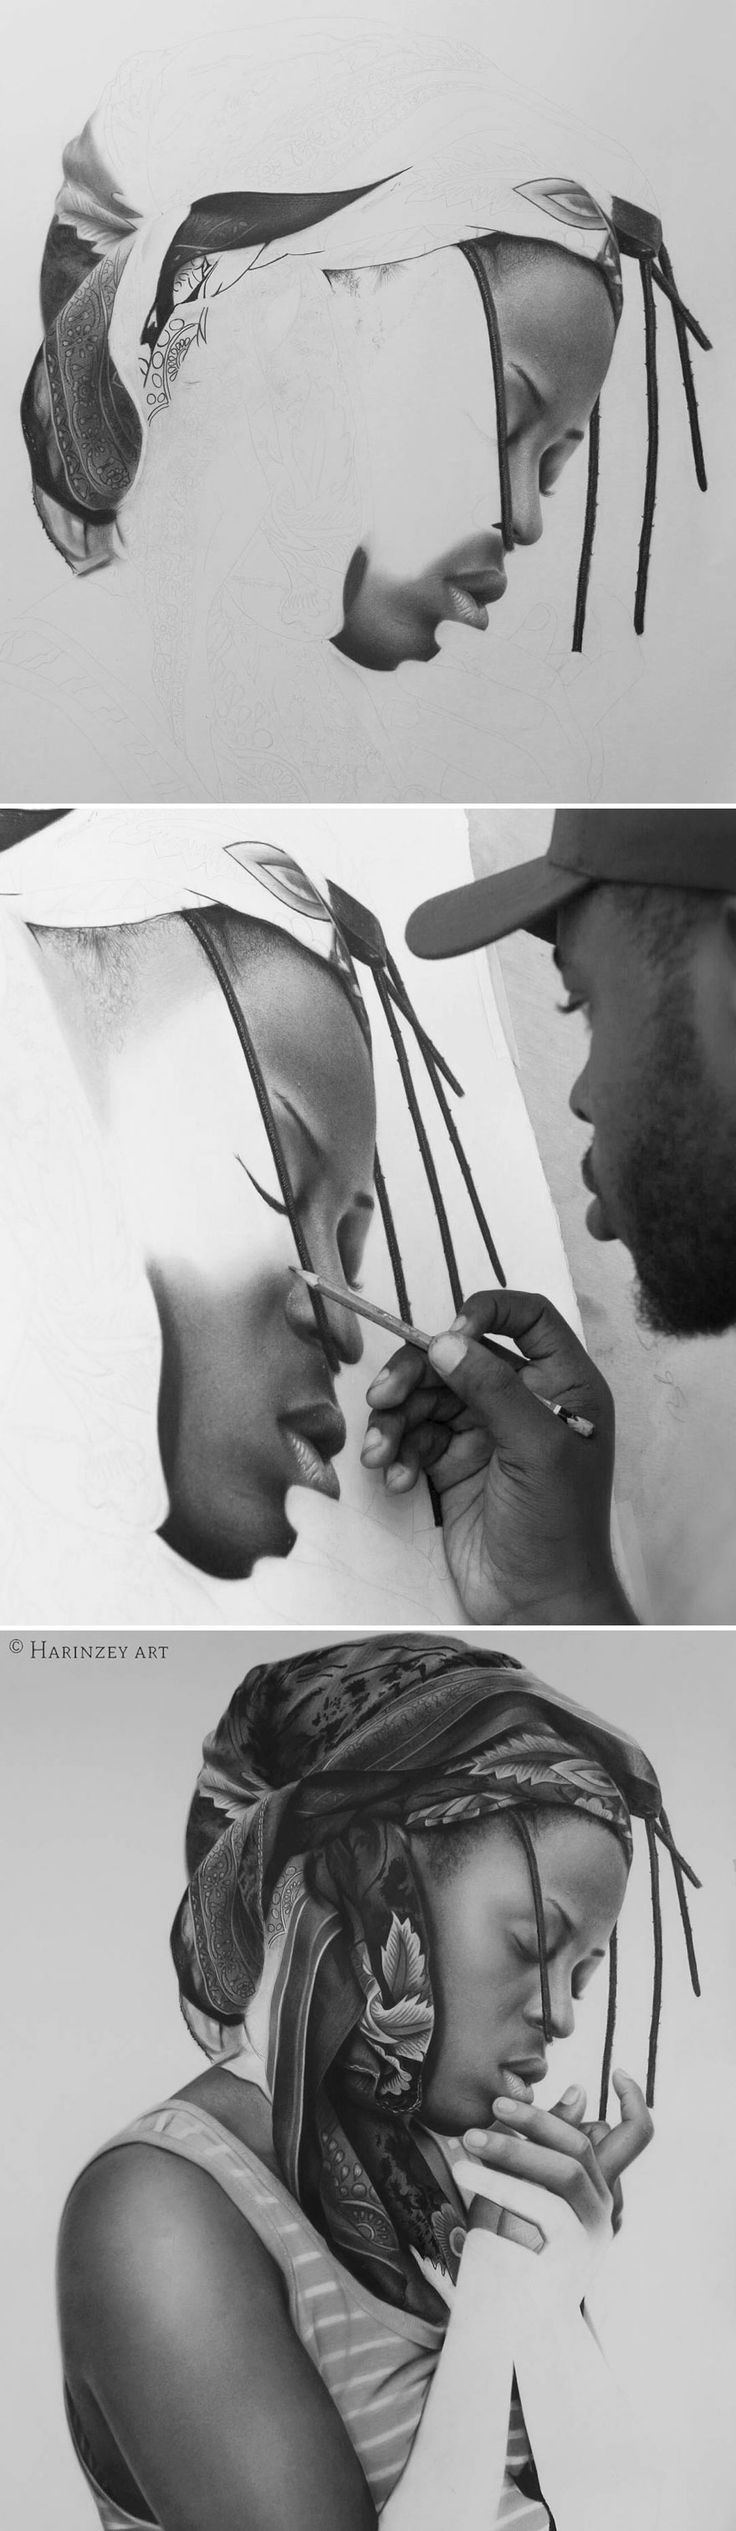 Best PENCIL GRAPHITE CHARCOAL ART Images On Pinterest - Nobody can believe this japanese artists pencil drawings arent photographs